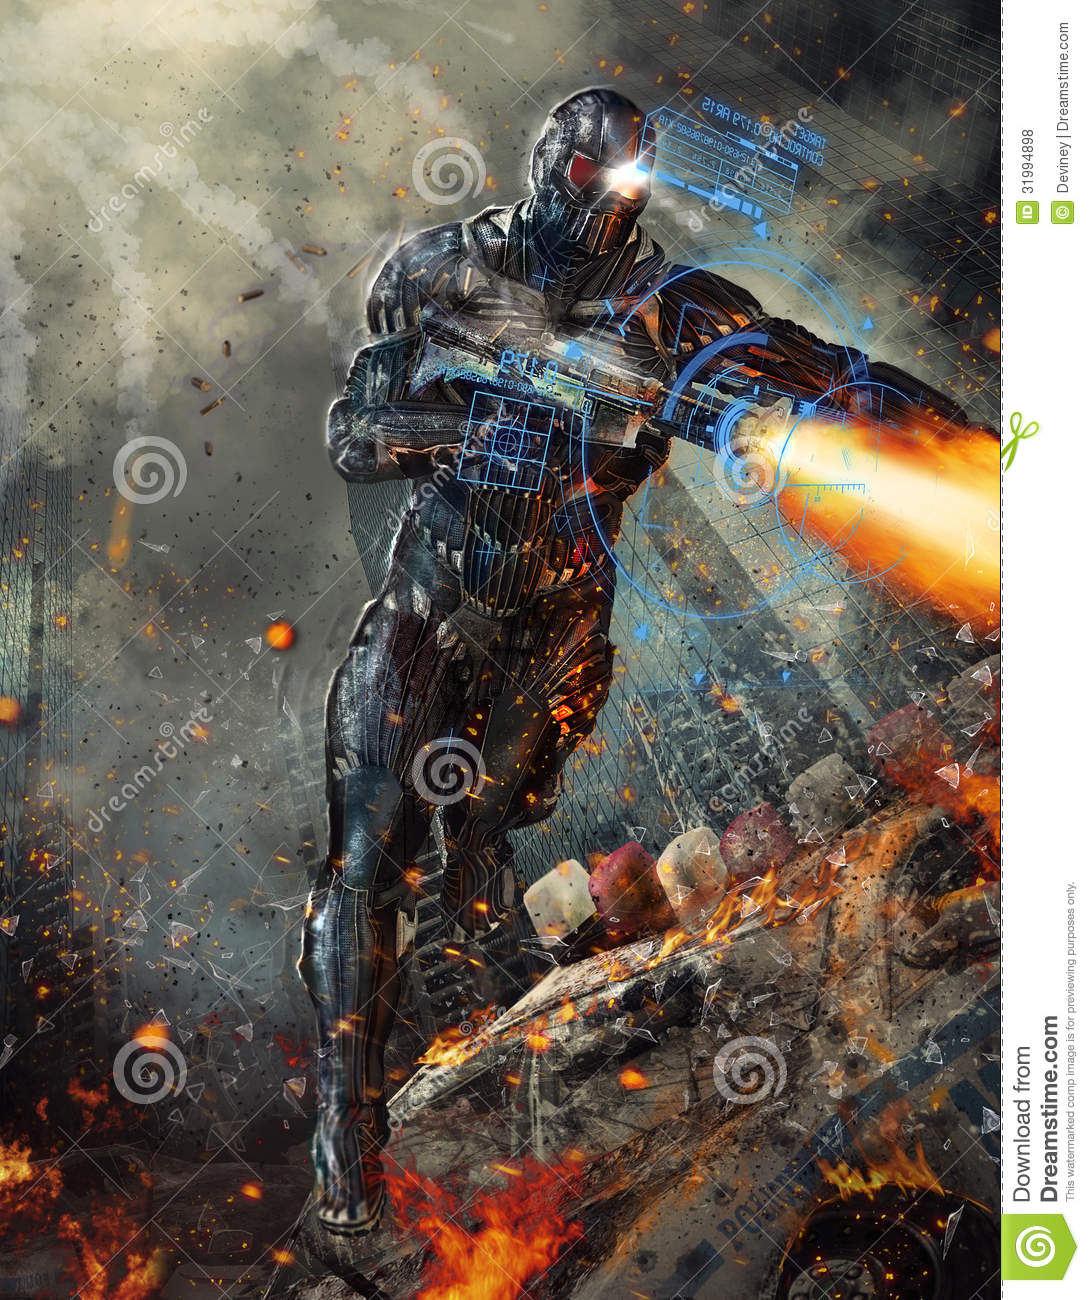 Futuristic Robot Soldier Royalty Free Stock Photos - Image ... Futuristic Robot Soldier